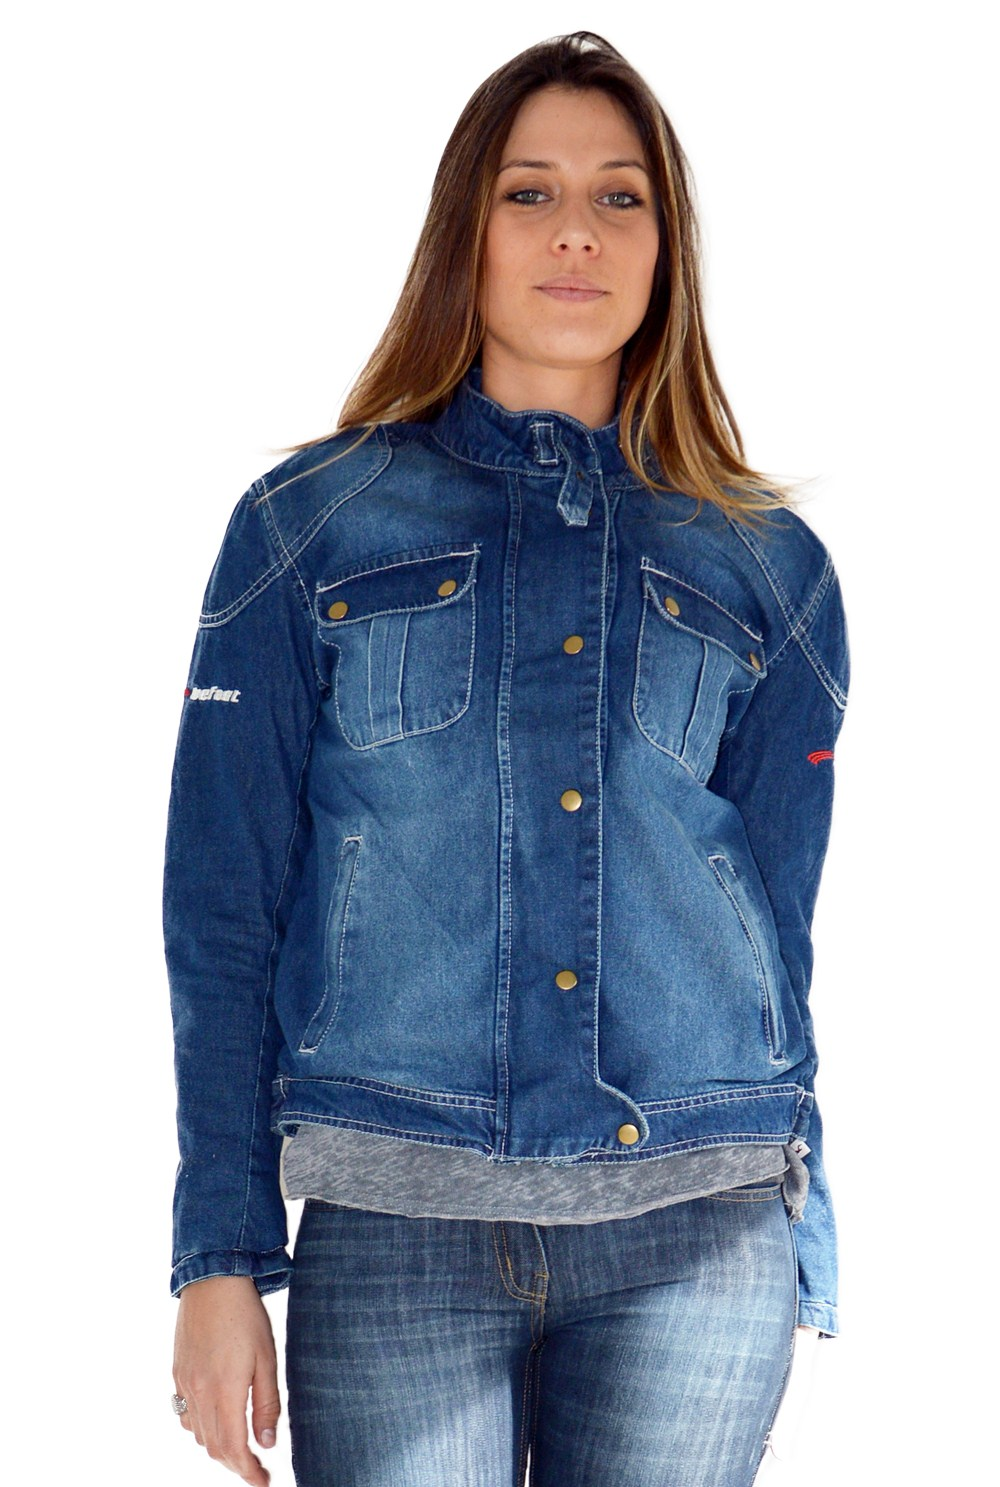 Giacca moto donna estiva jeans Befast James Lady